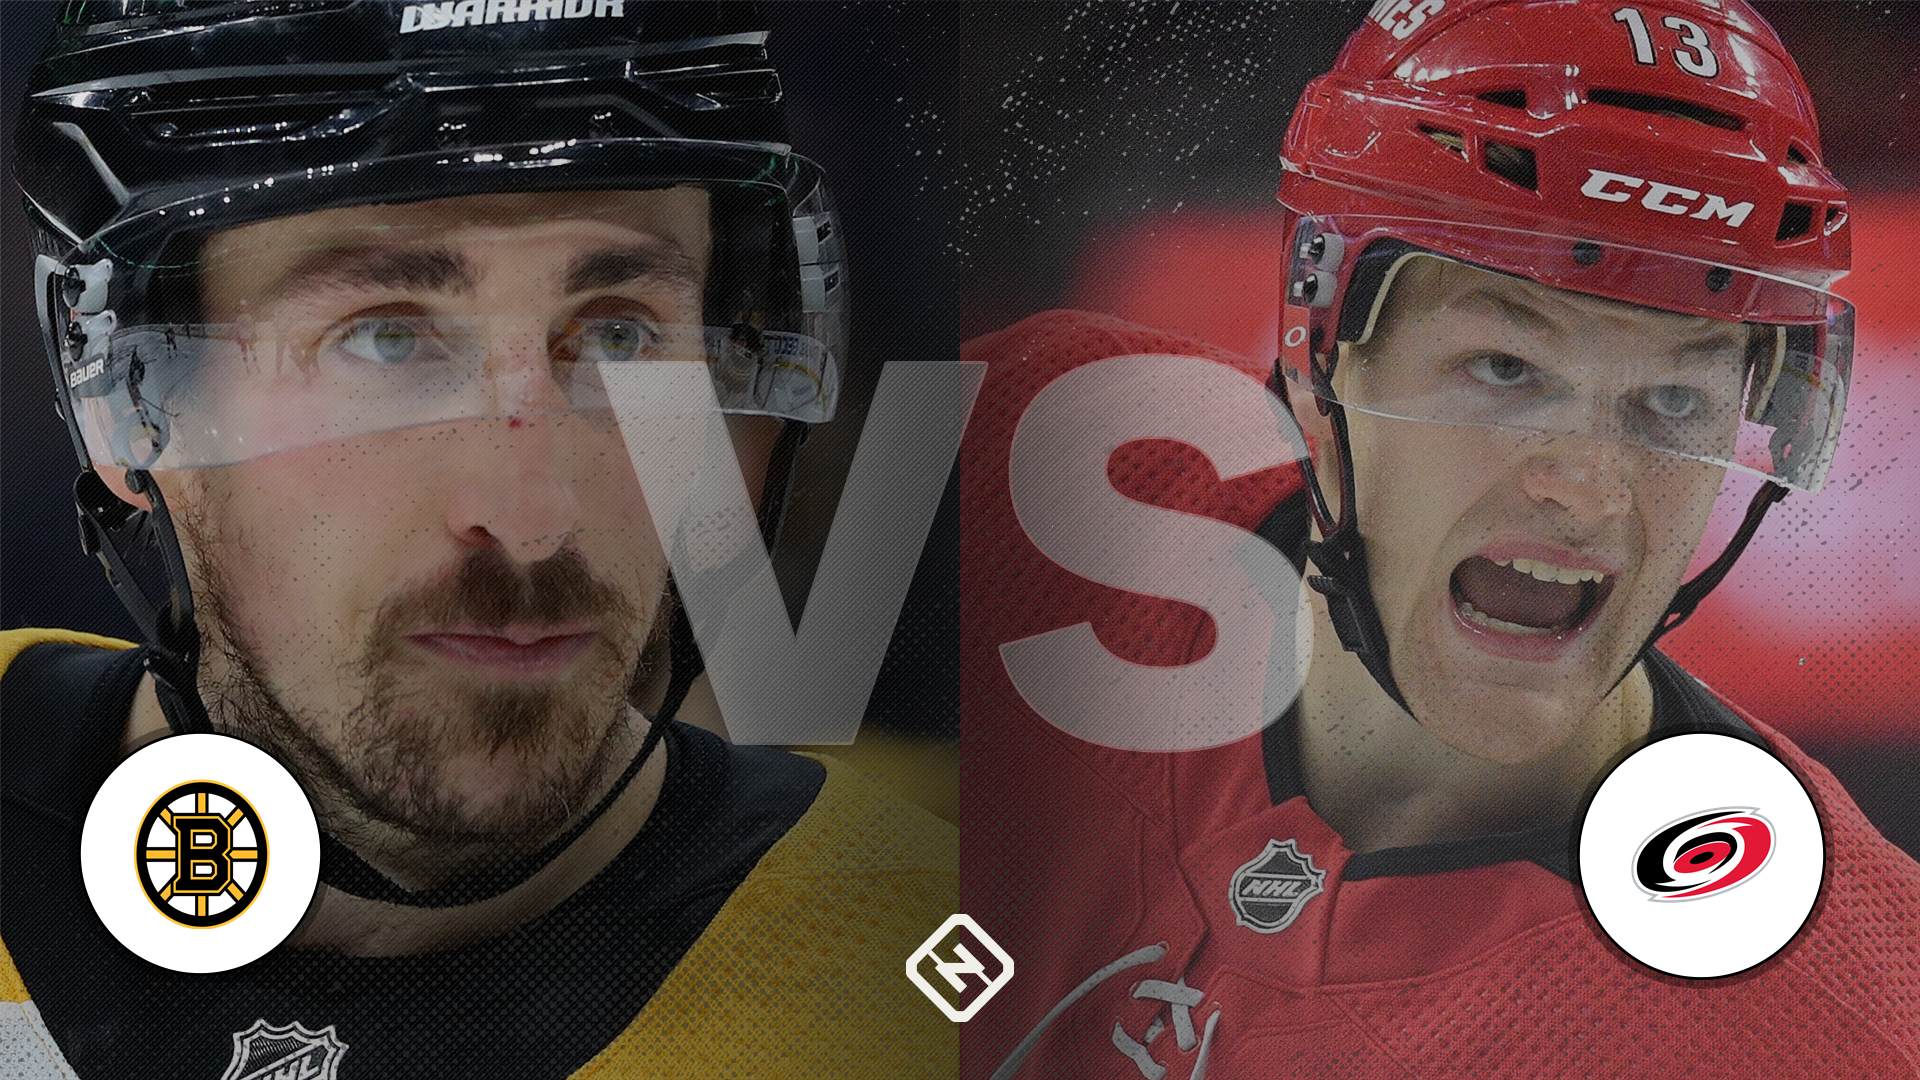 NHL playoffs 2019 Predictions odds for Bruins vs Hurricanes 1920x1080